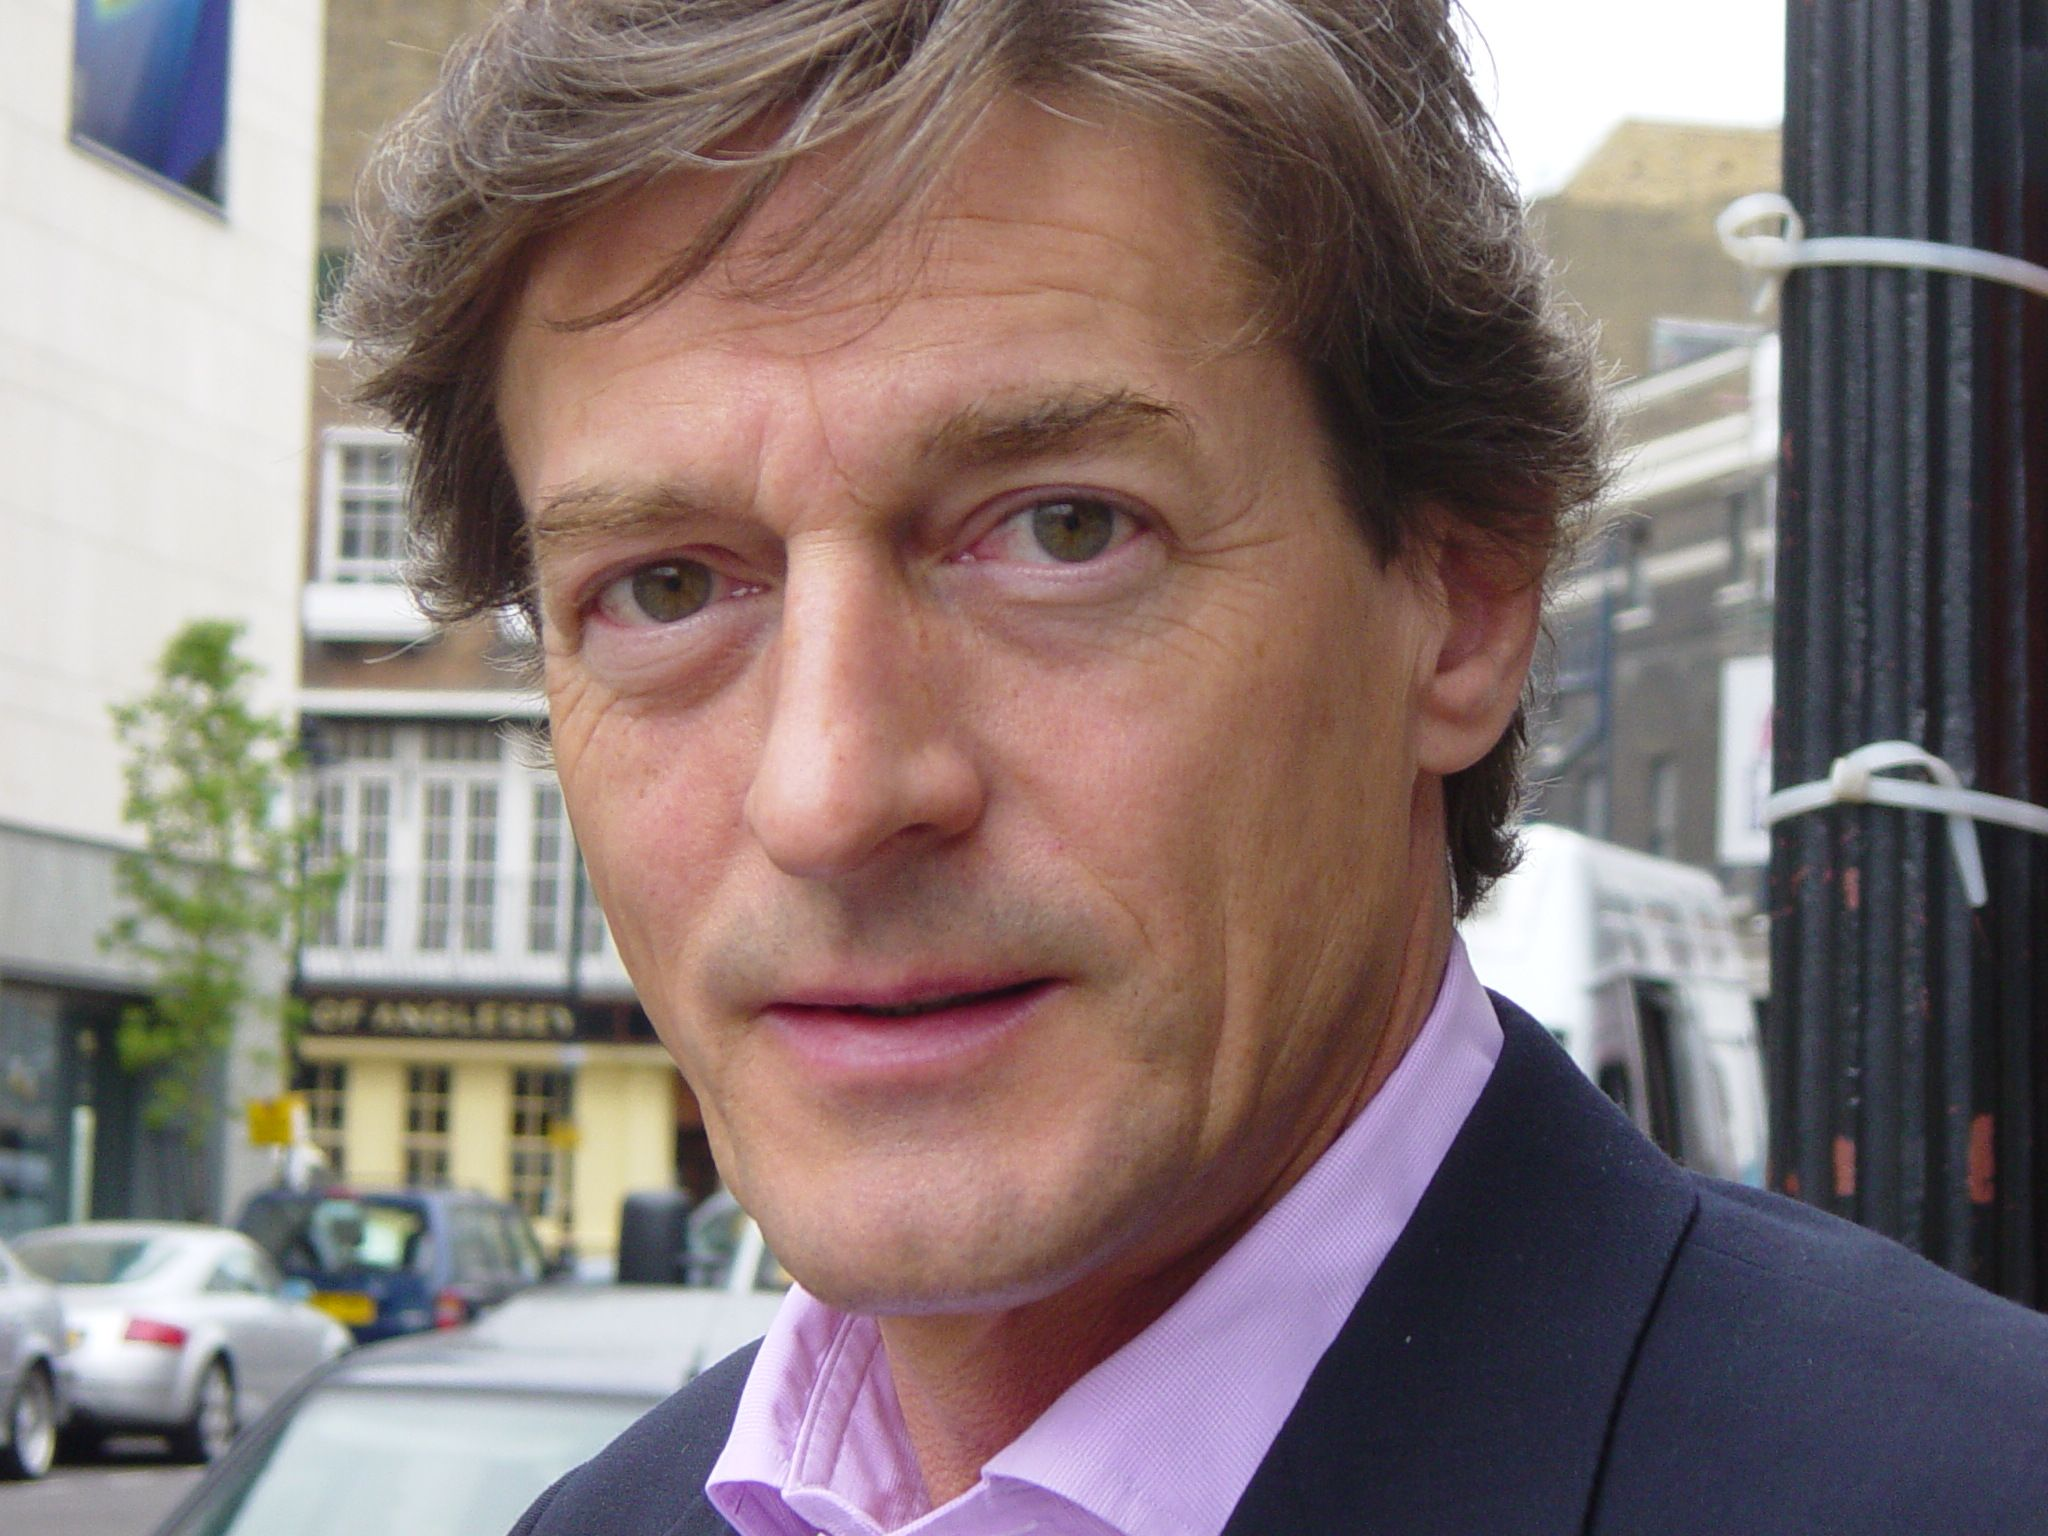 Nigel Havers (born 1951)